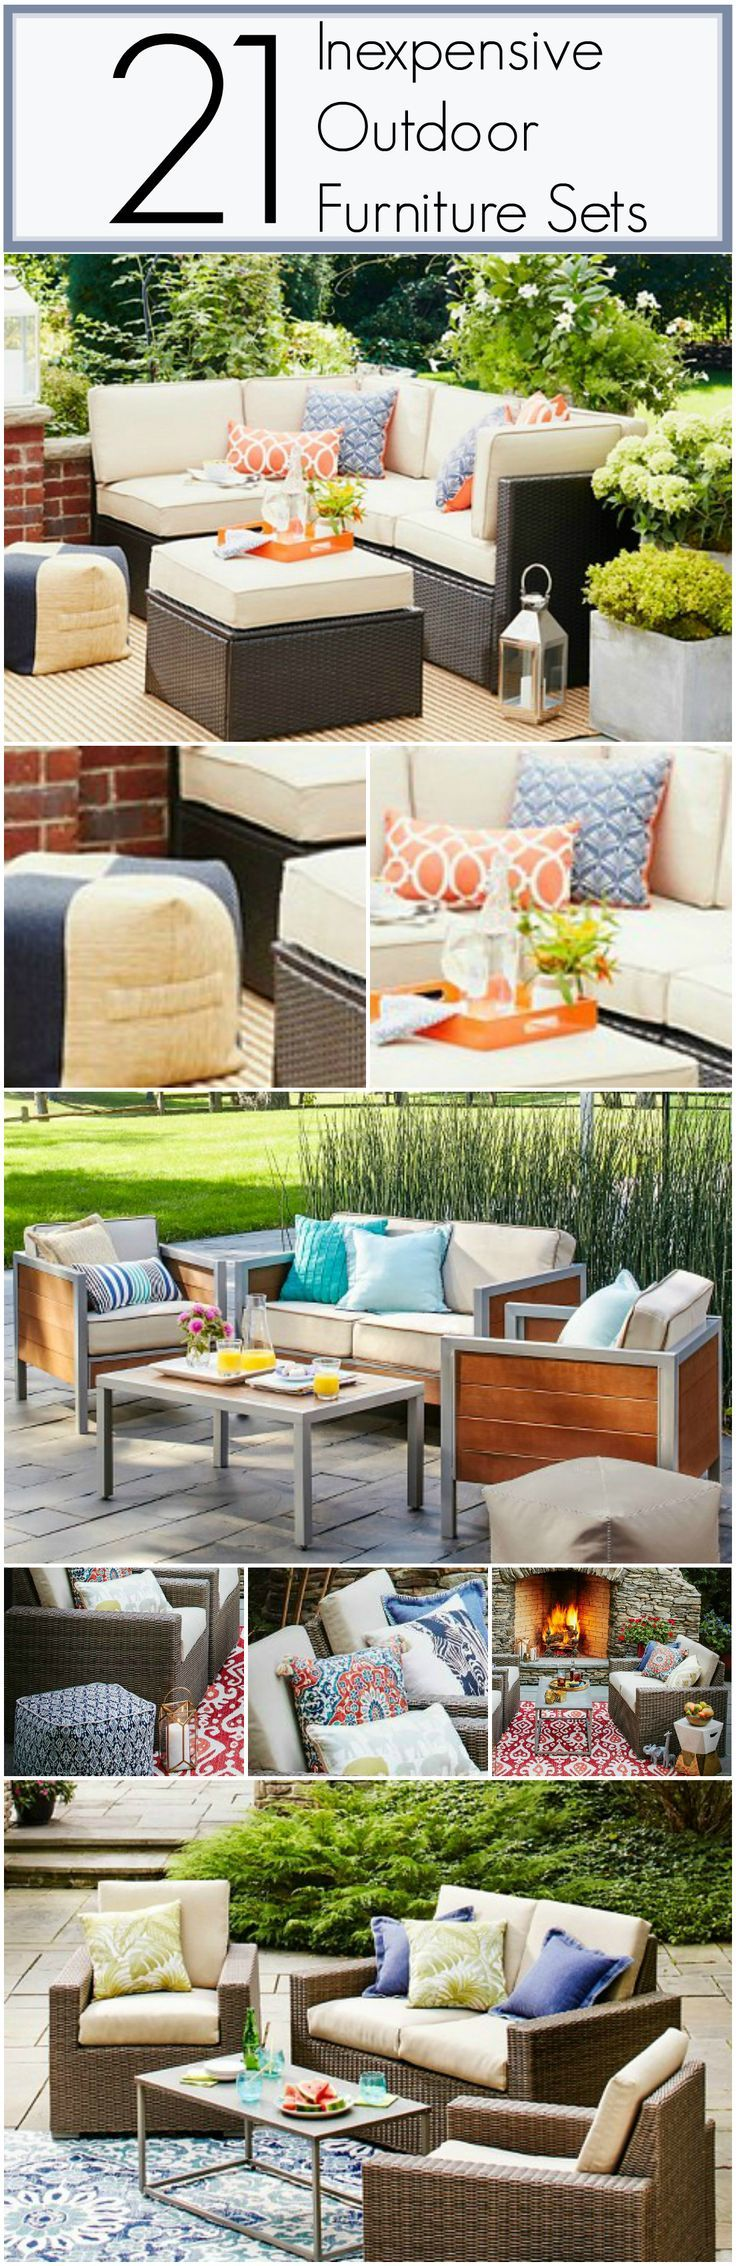 21 Inexpensive Outdoor Furniture Sets! Get an entire patio set for under $900. Most are under $700. High style outdoor living patio furniture on a low budget!.jpg